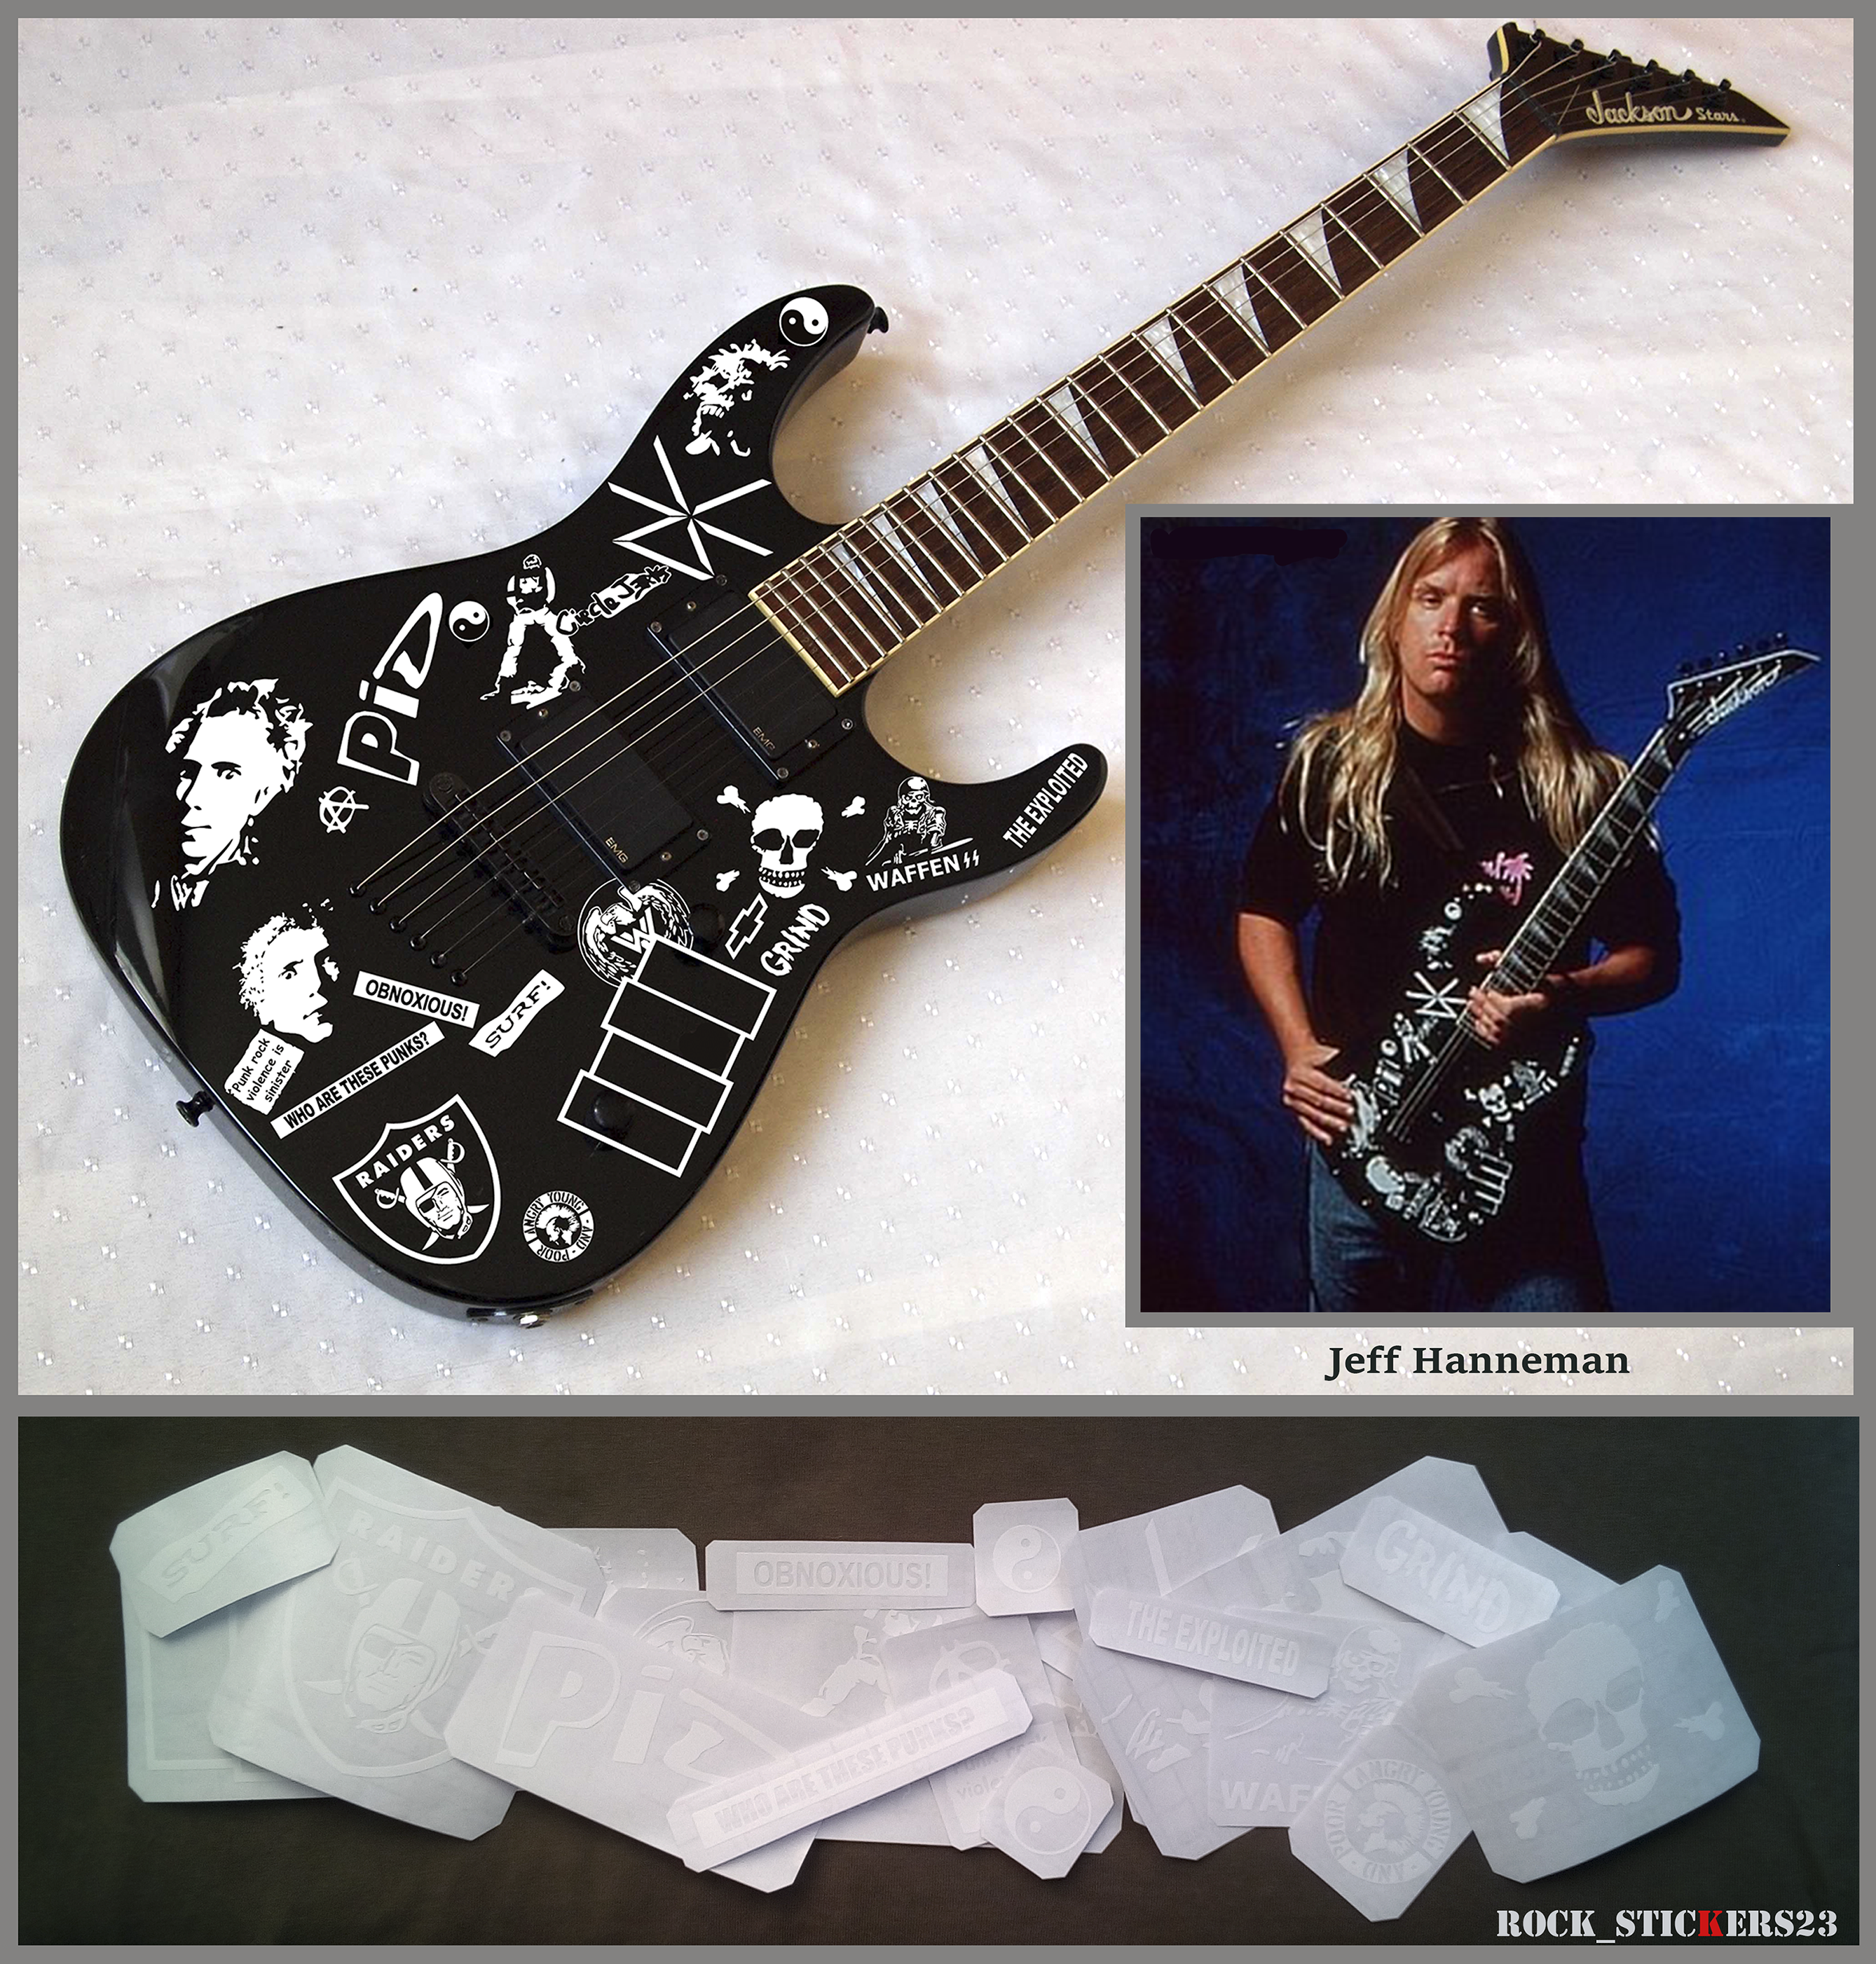 Jeff Hanneman Guitar Stickers Replica Vinyl Decal Slayer Jackson King V Wiring Diagram Full Set 22